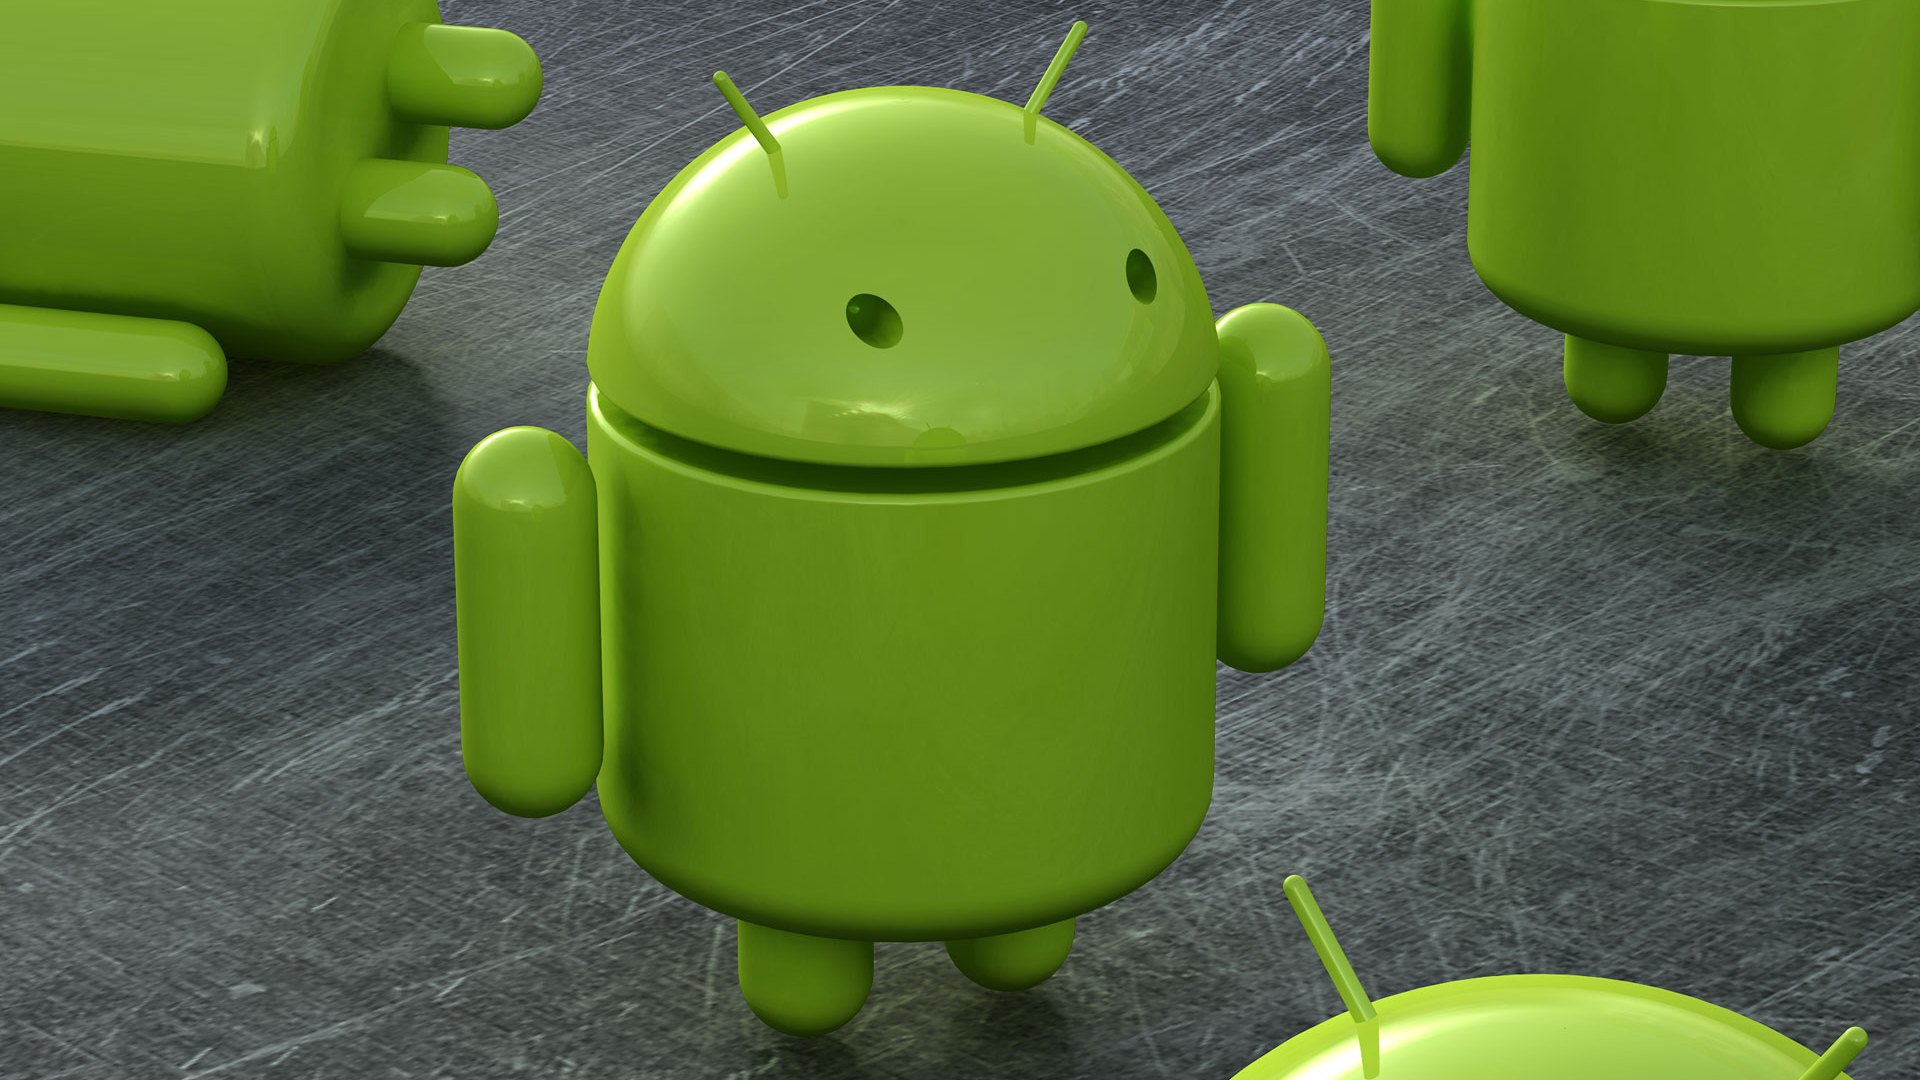 Android shipments set to treble in Asia in 2011, account for 54% of smartphones